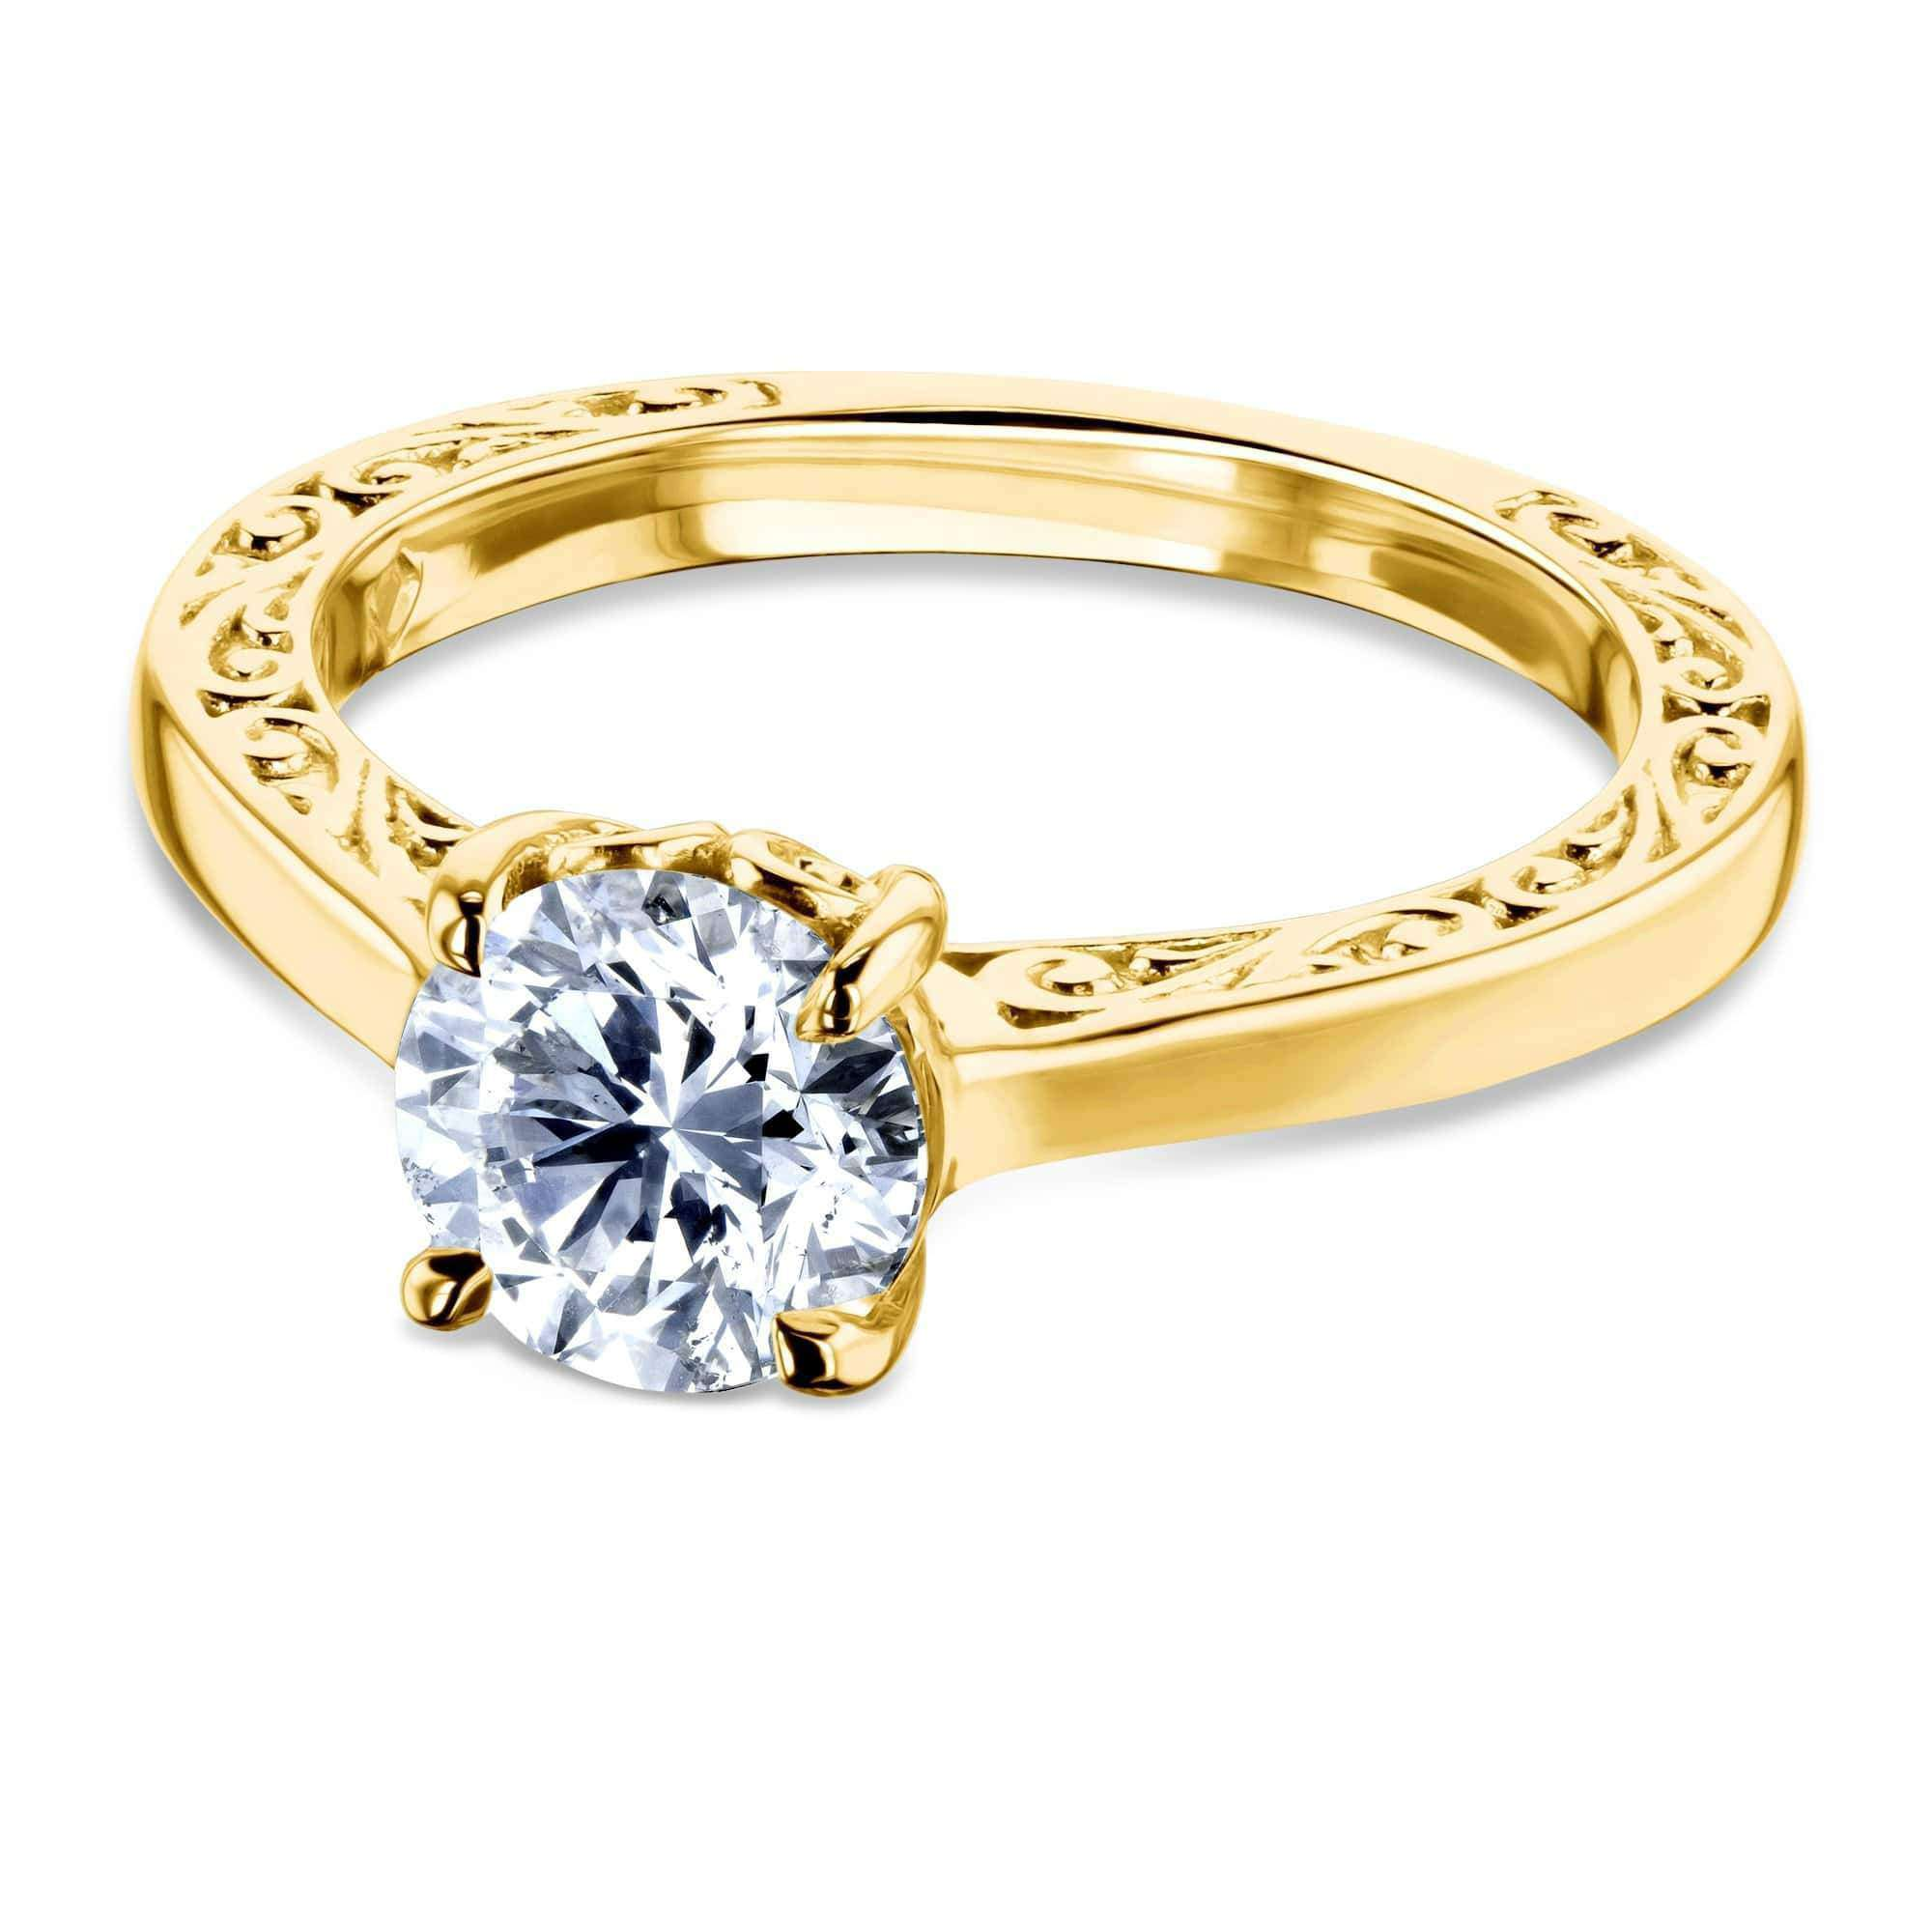 Discounts 1ct Diamond Solitaire Filigree Engraved Ring - yellow-gold 6